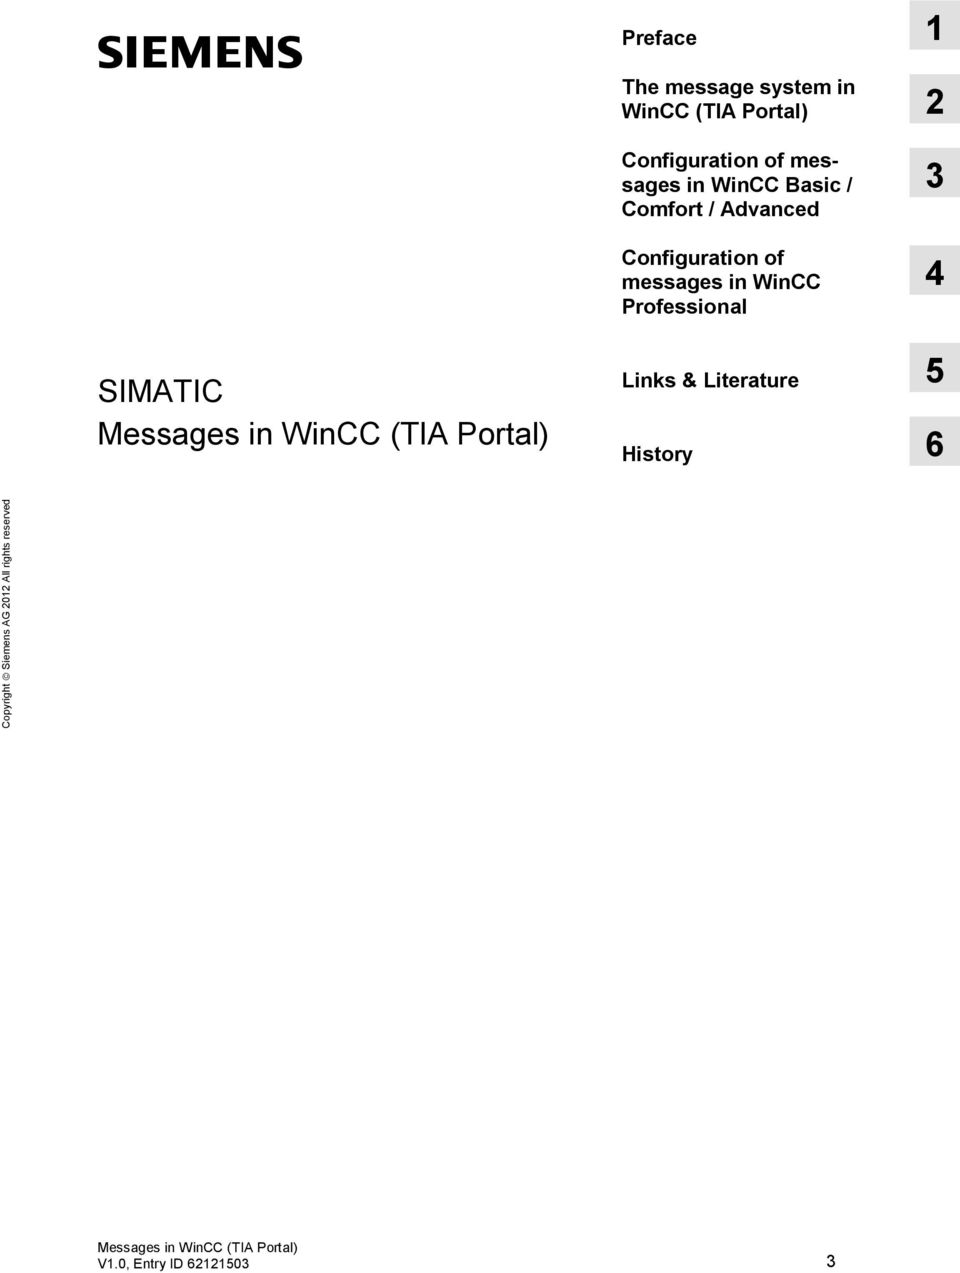 messages in WinCC Professional 3 4 SIMATIC Links & Literature 5